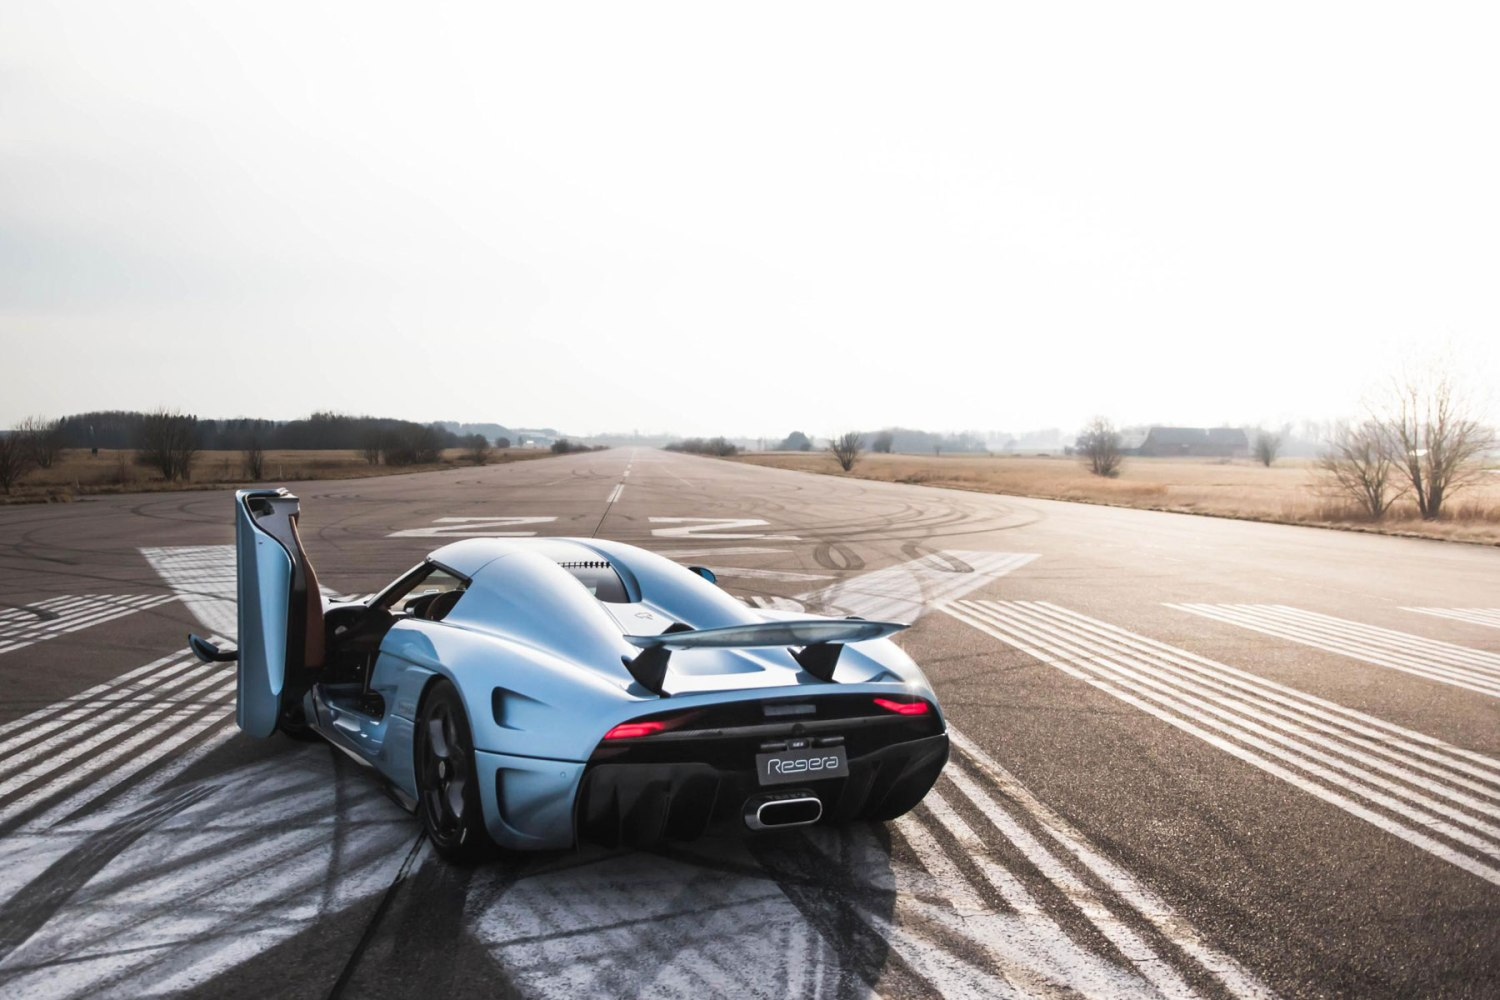 Koenigsegg Regera – 2.8 seconds